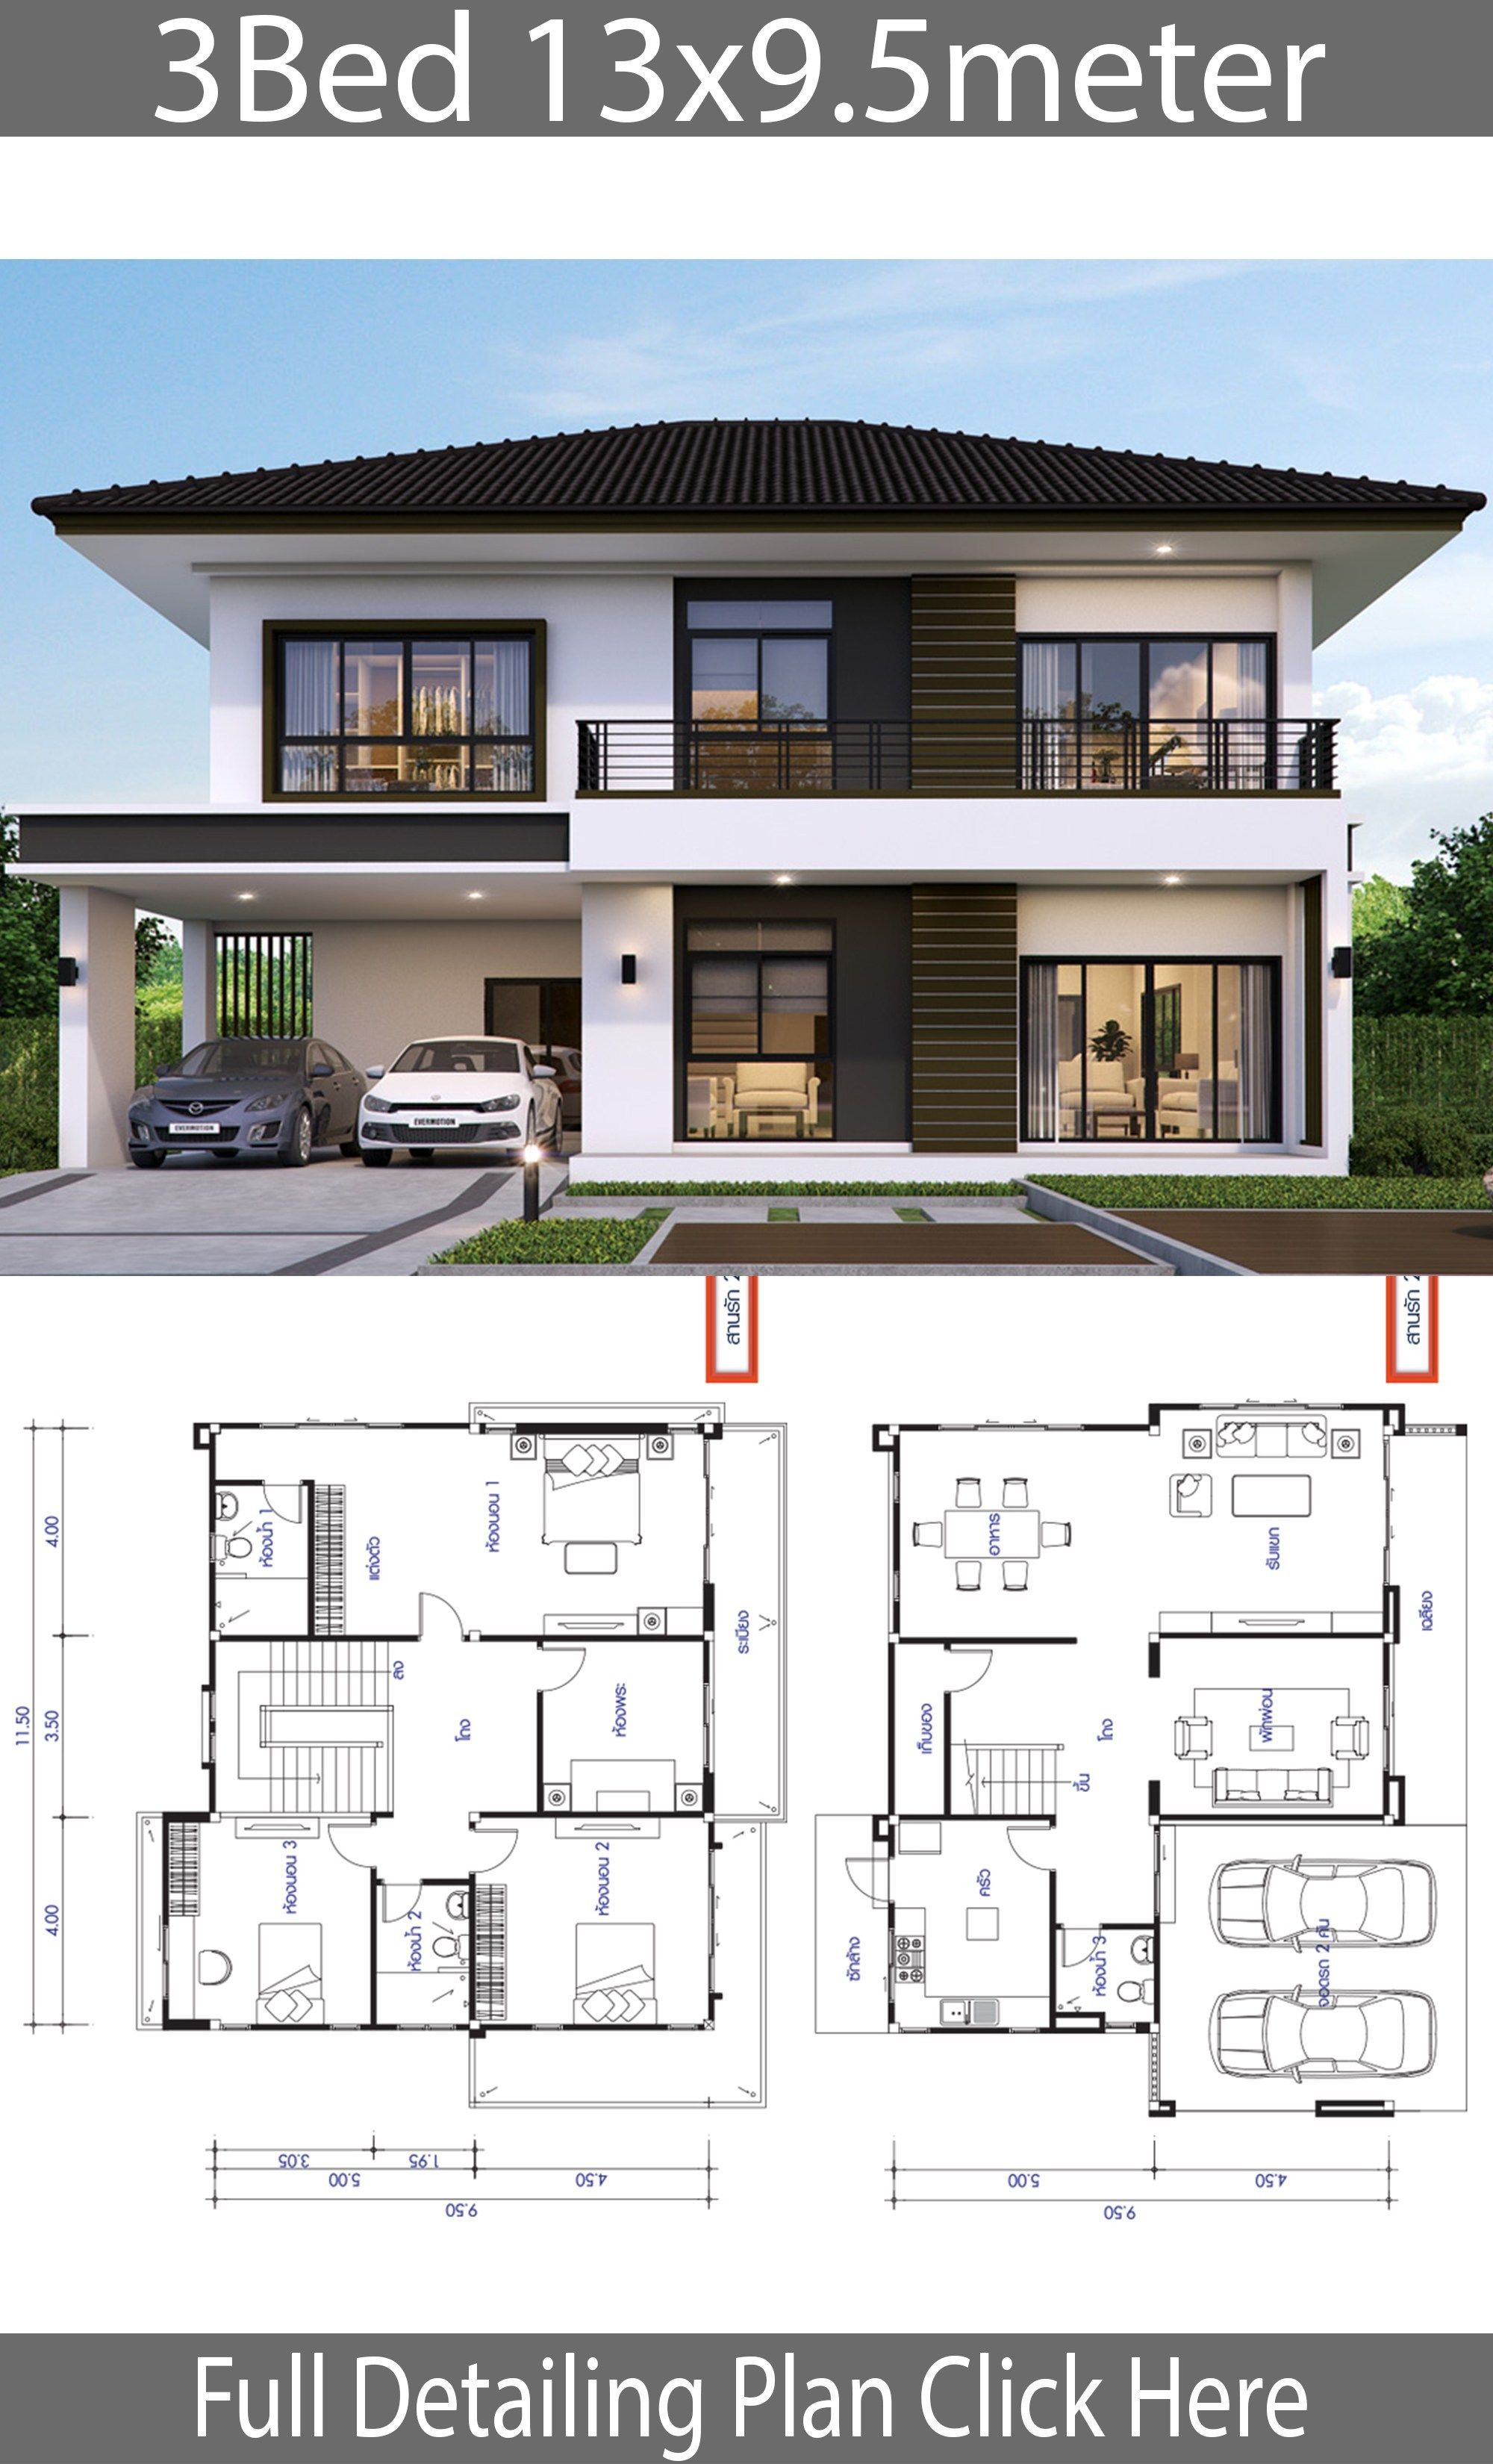 Designer House Plans with Photos Awesome House Design Plan 13x9 5m with 3 Bedrooms